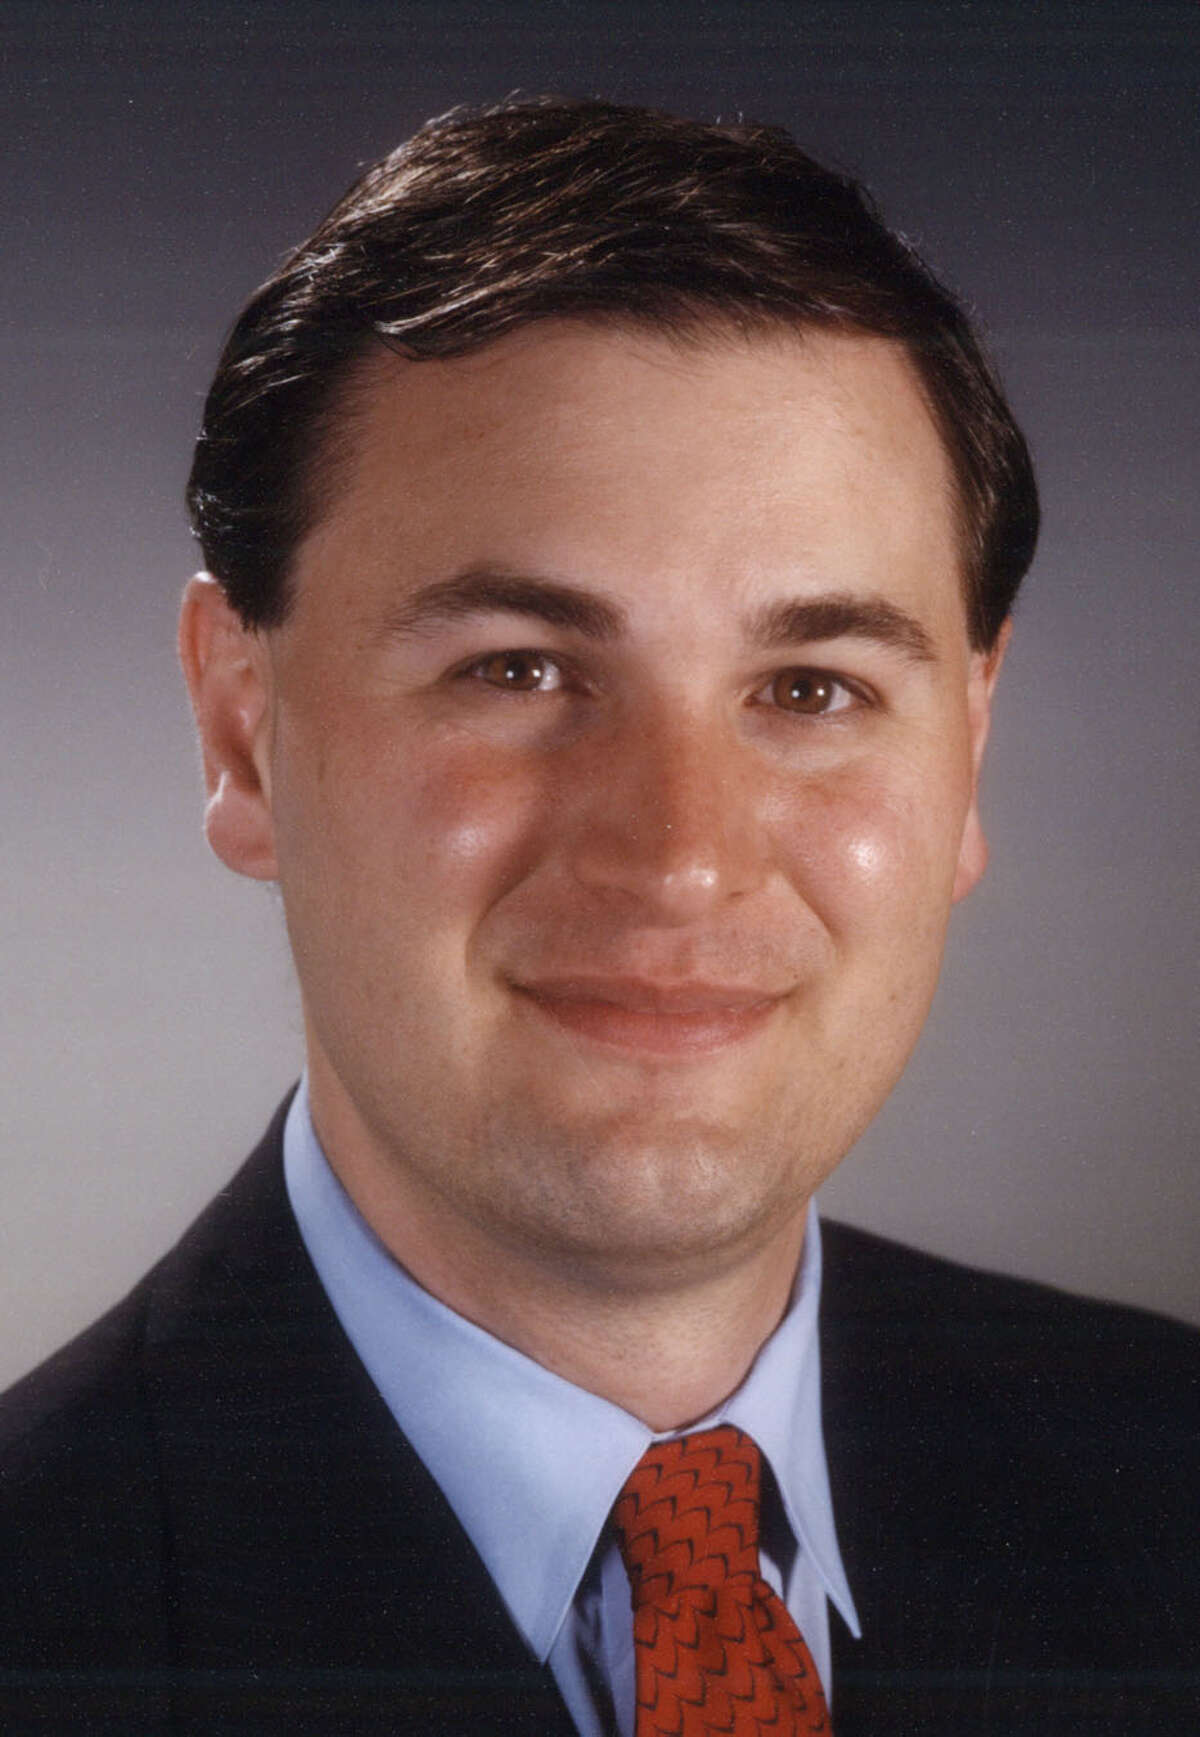 Carl Kempf III as seen when he worked for Hodgson Russ LLP between 2004 and 2006. Kempf worked for SUNY Polytechnic Institute founder Alain Kaloyeros before Kaloyeros was arrested on bid-rigging charges in 2016. Kempf was appointed in August 2018 to be Rensselaer County attorney.